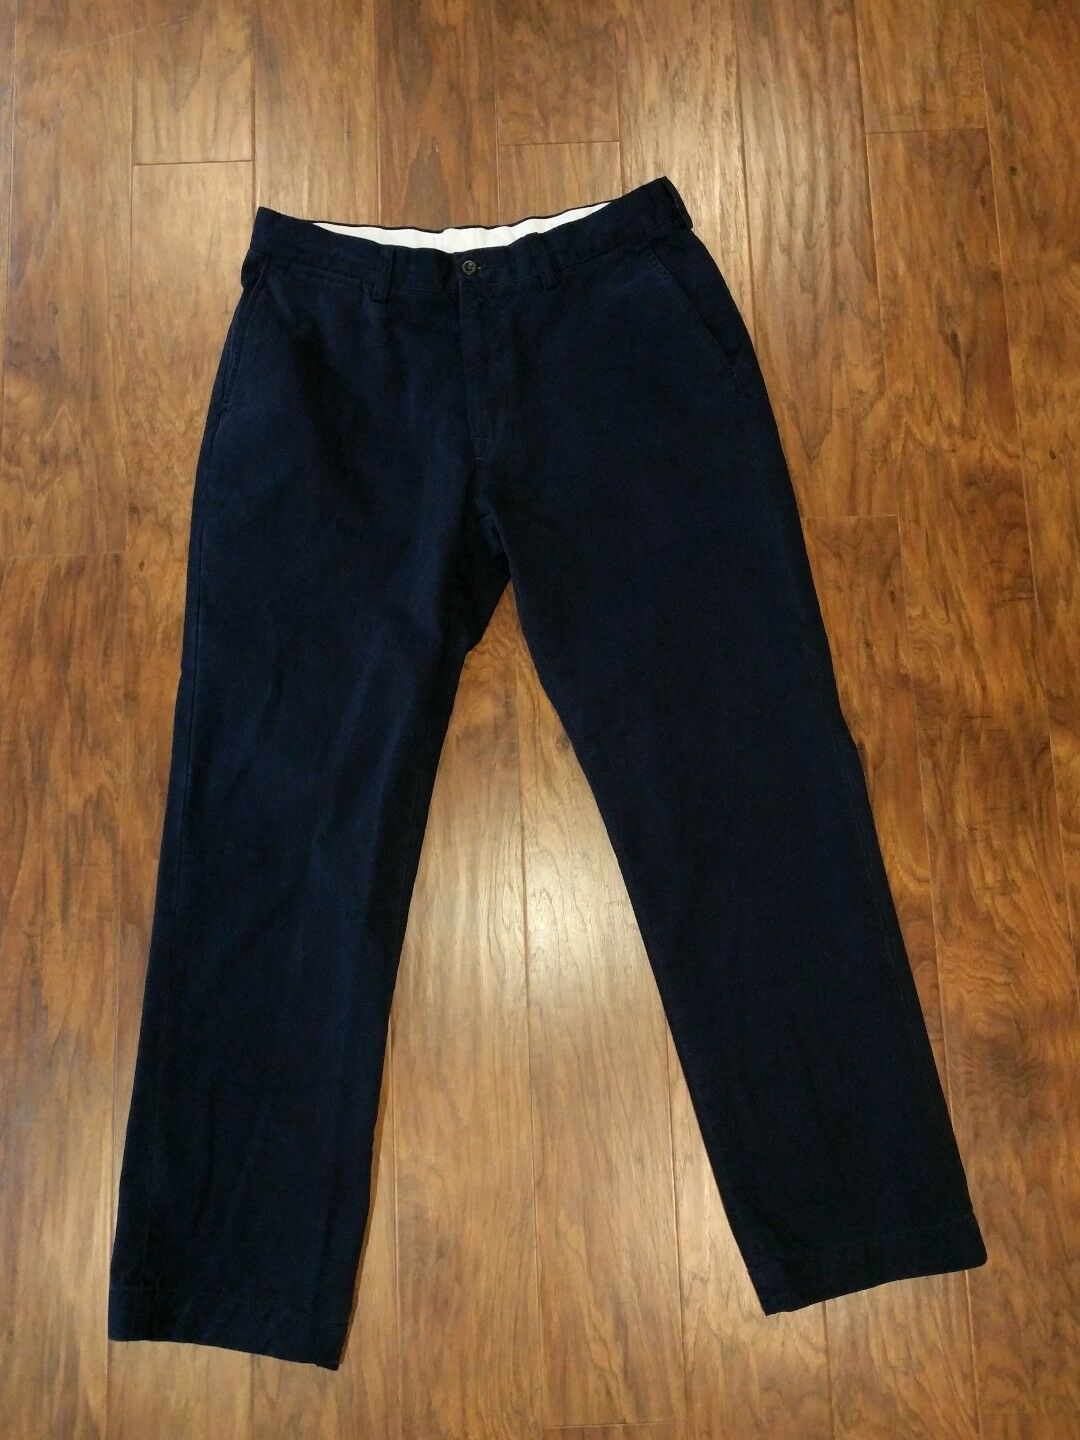 Polo Ralph Lauren Navy Pants